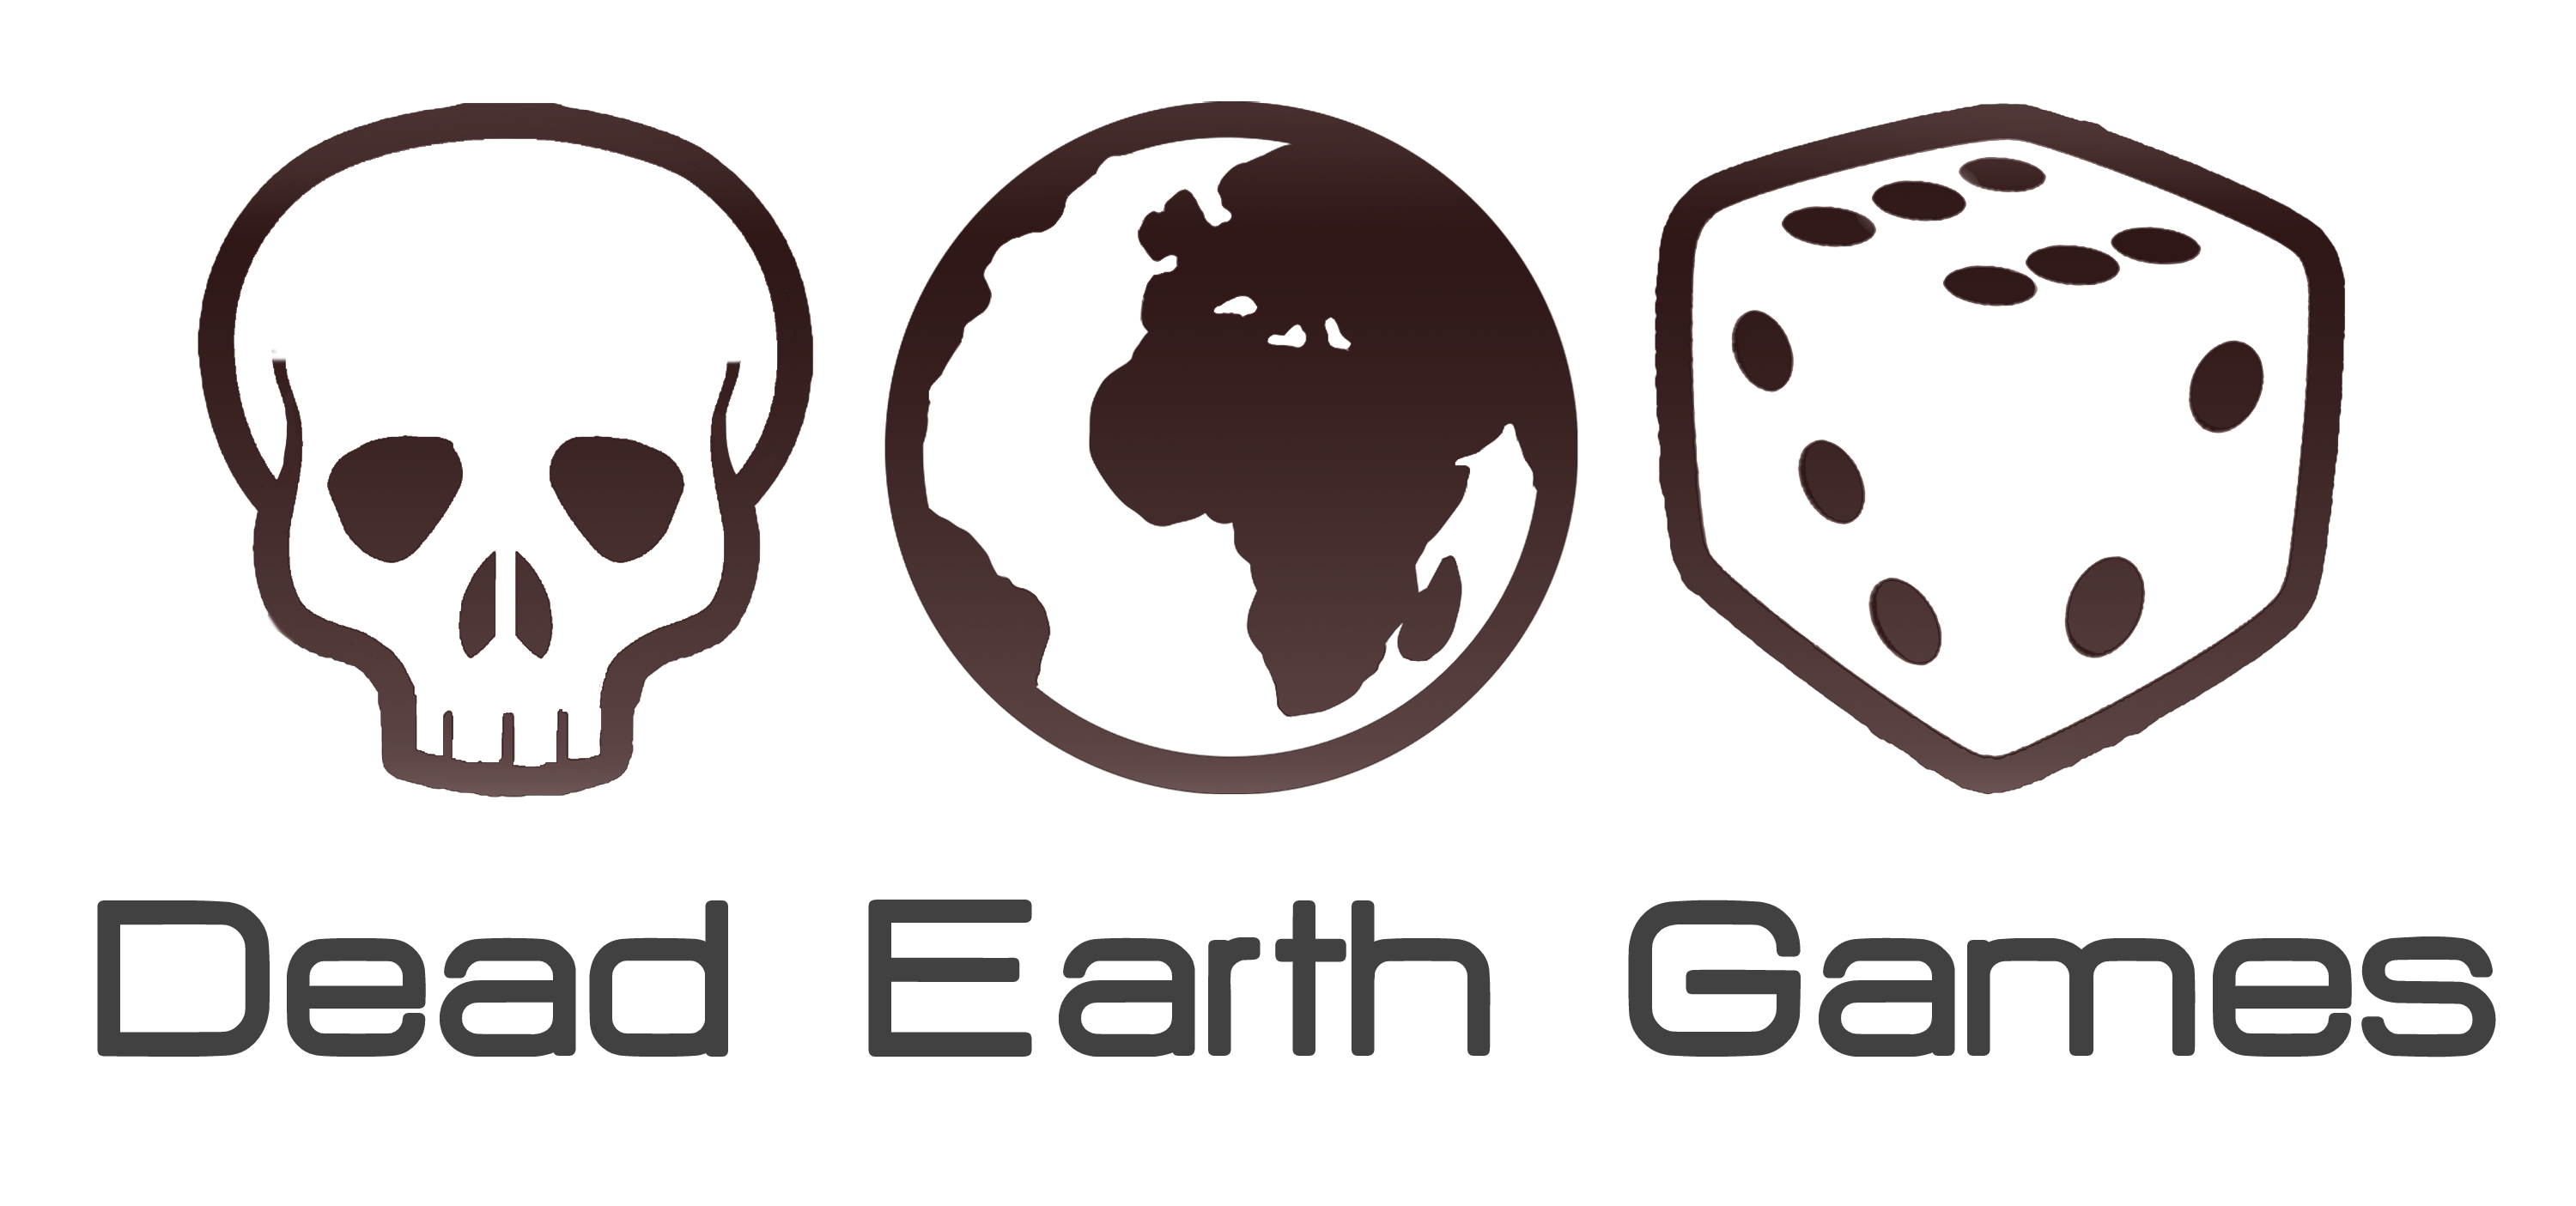 Dead Earth Games